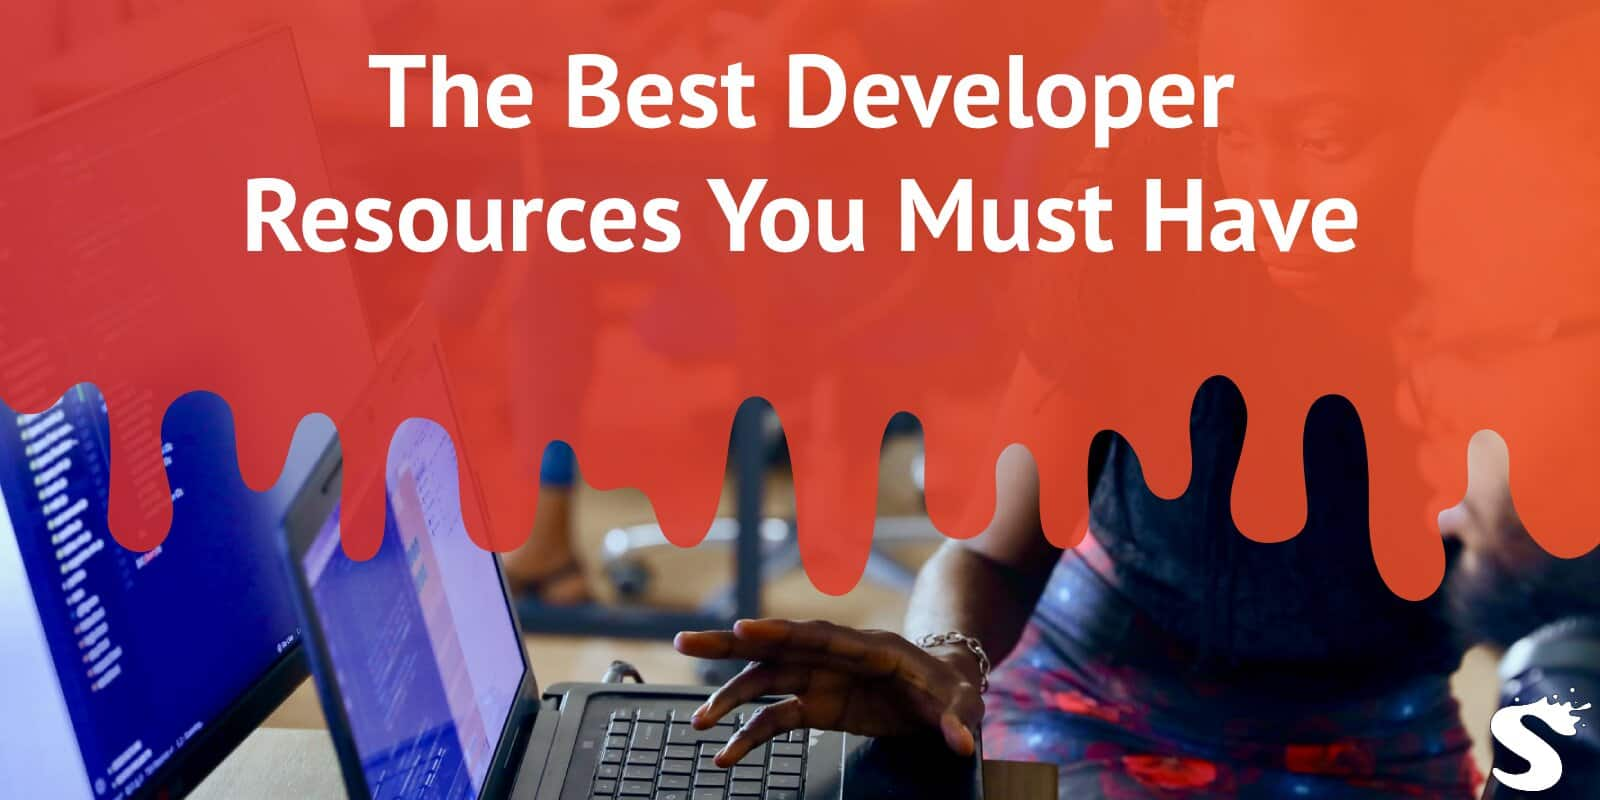 The Best Developer Resources You Must Have